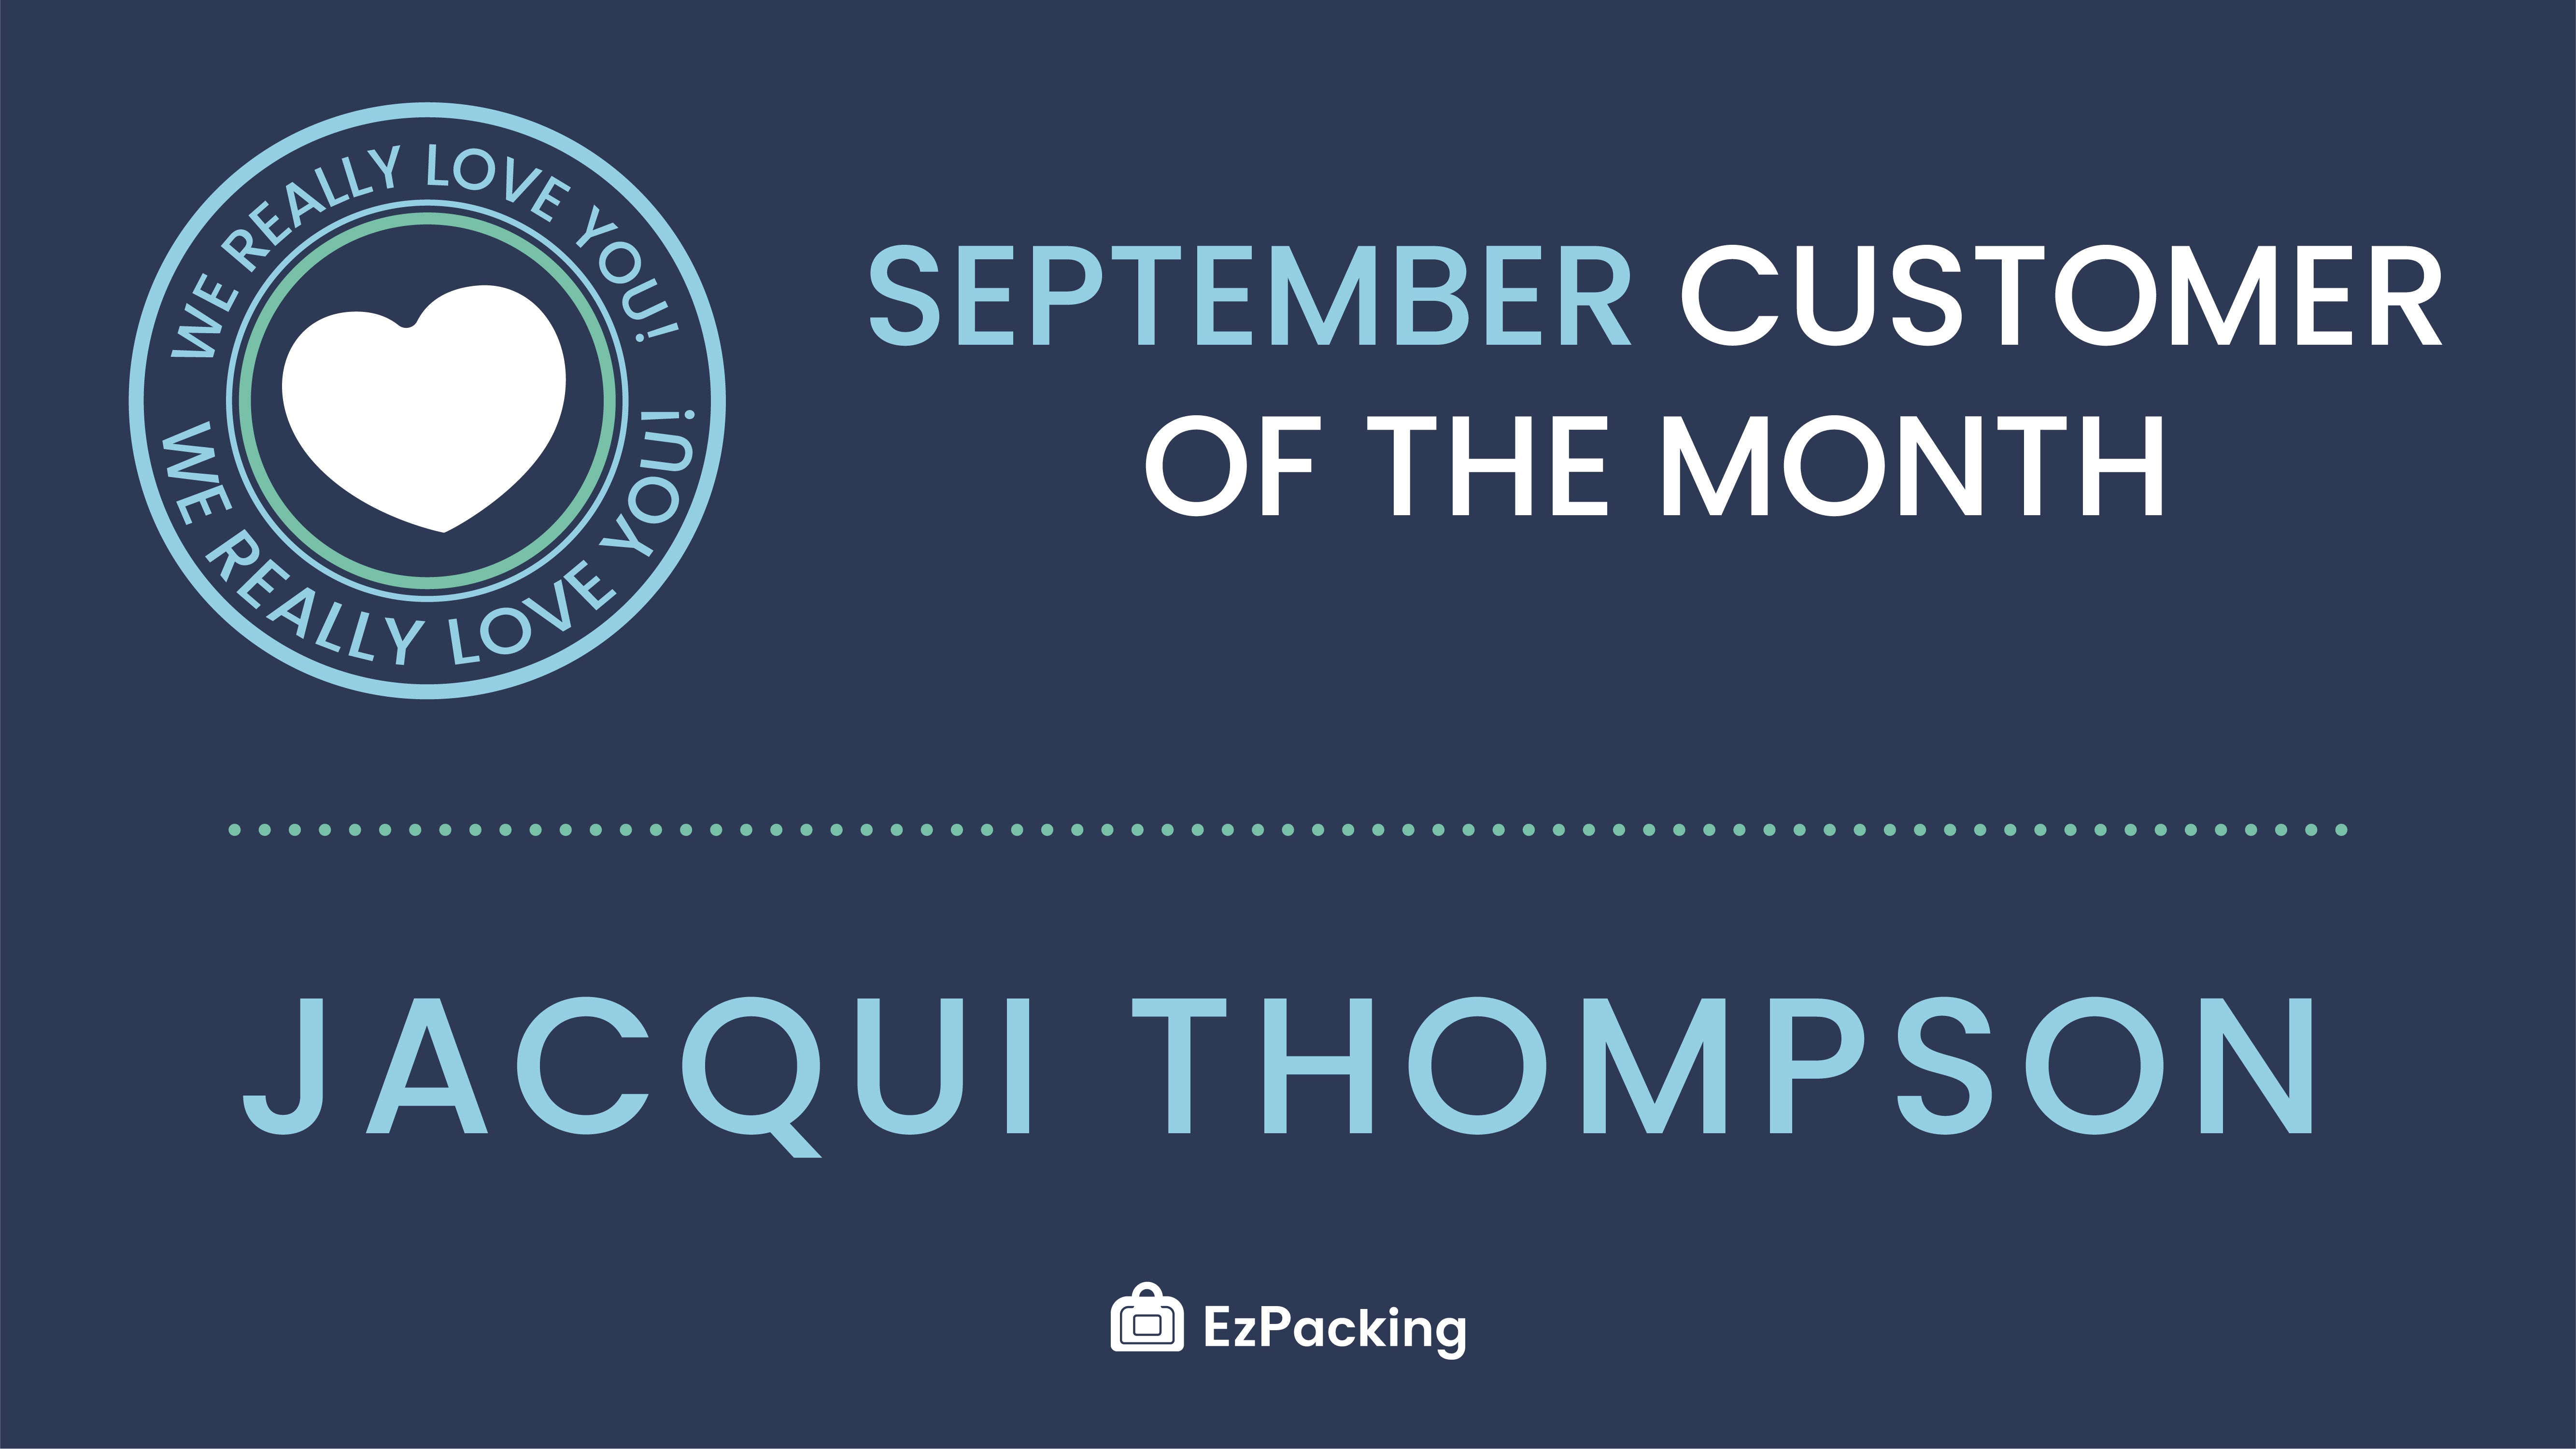 September Customer of the Month